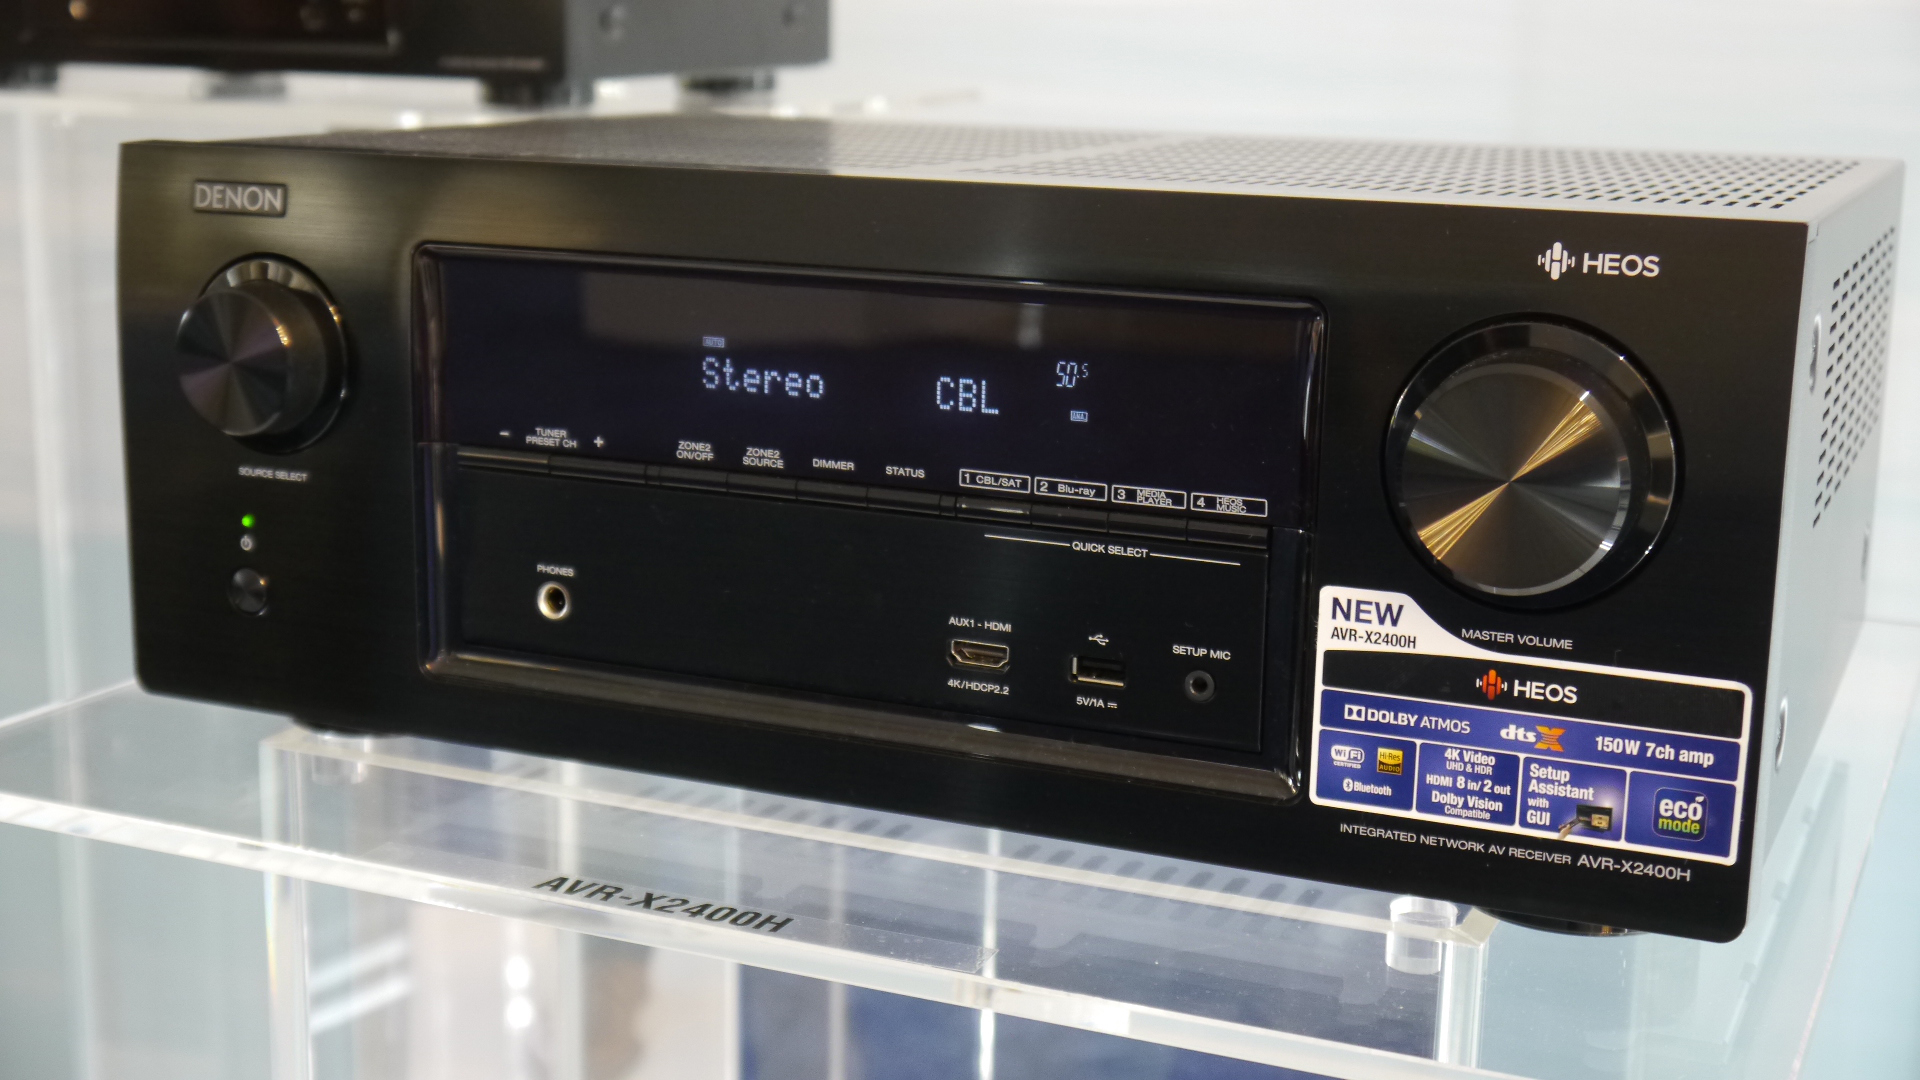 Denon AVR-X2400H AV Receiver Review